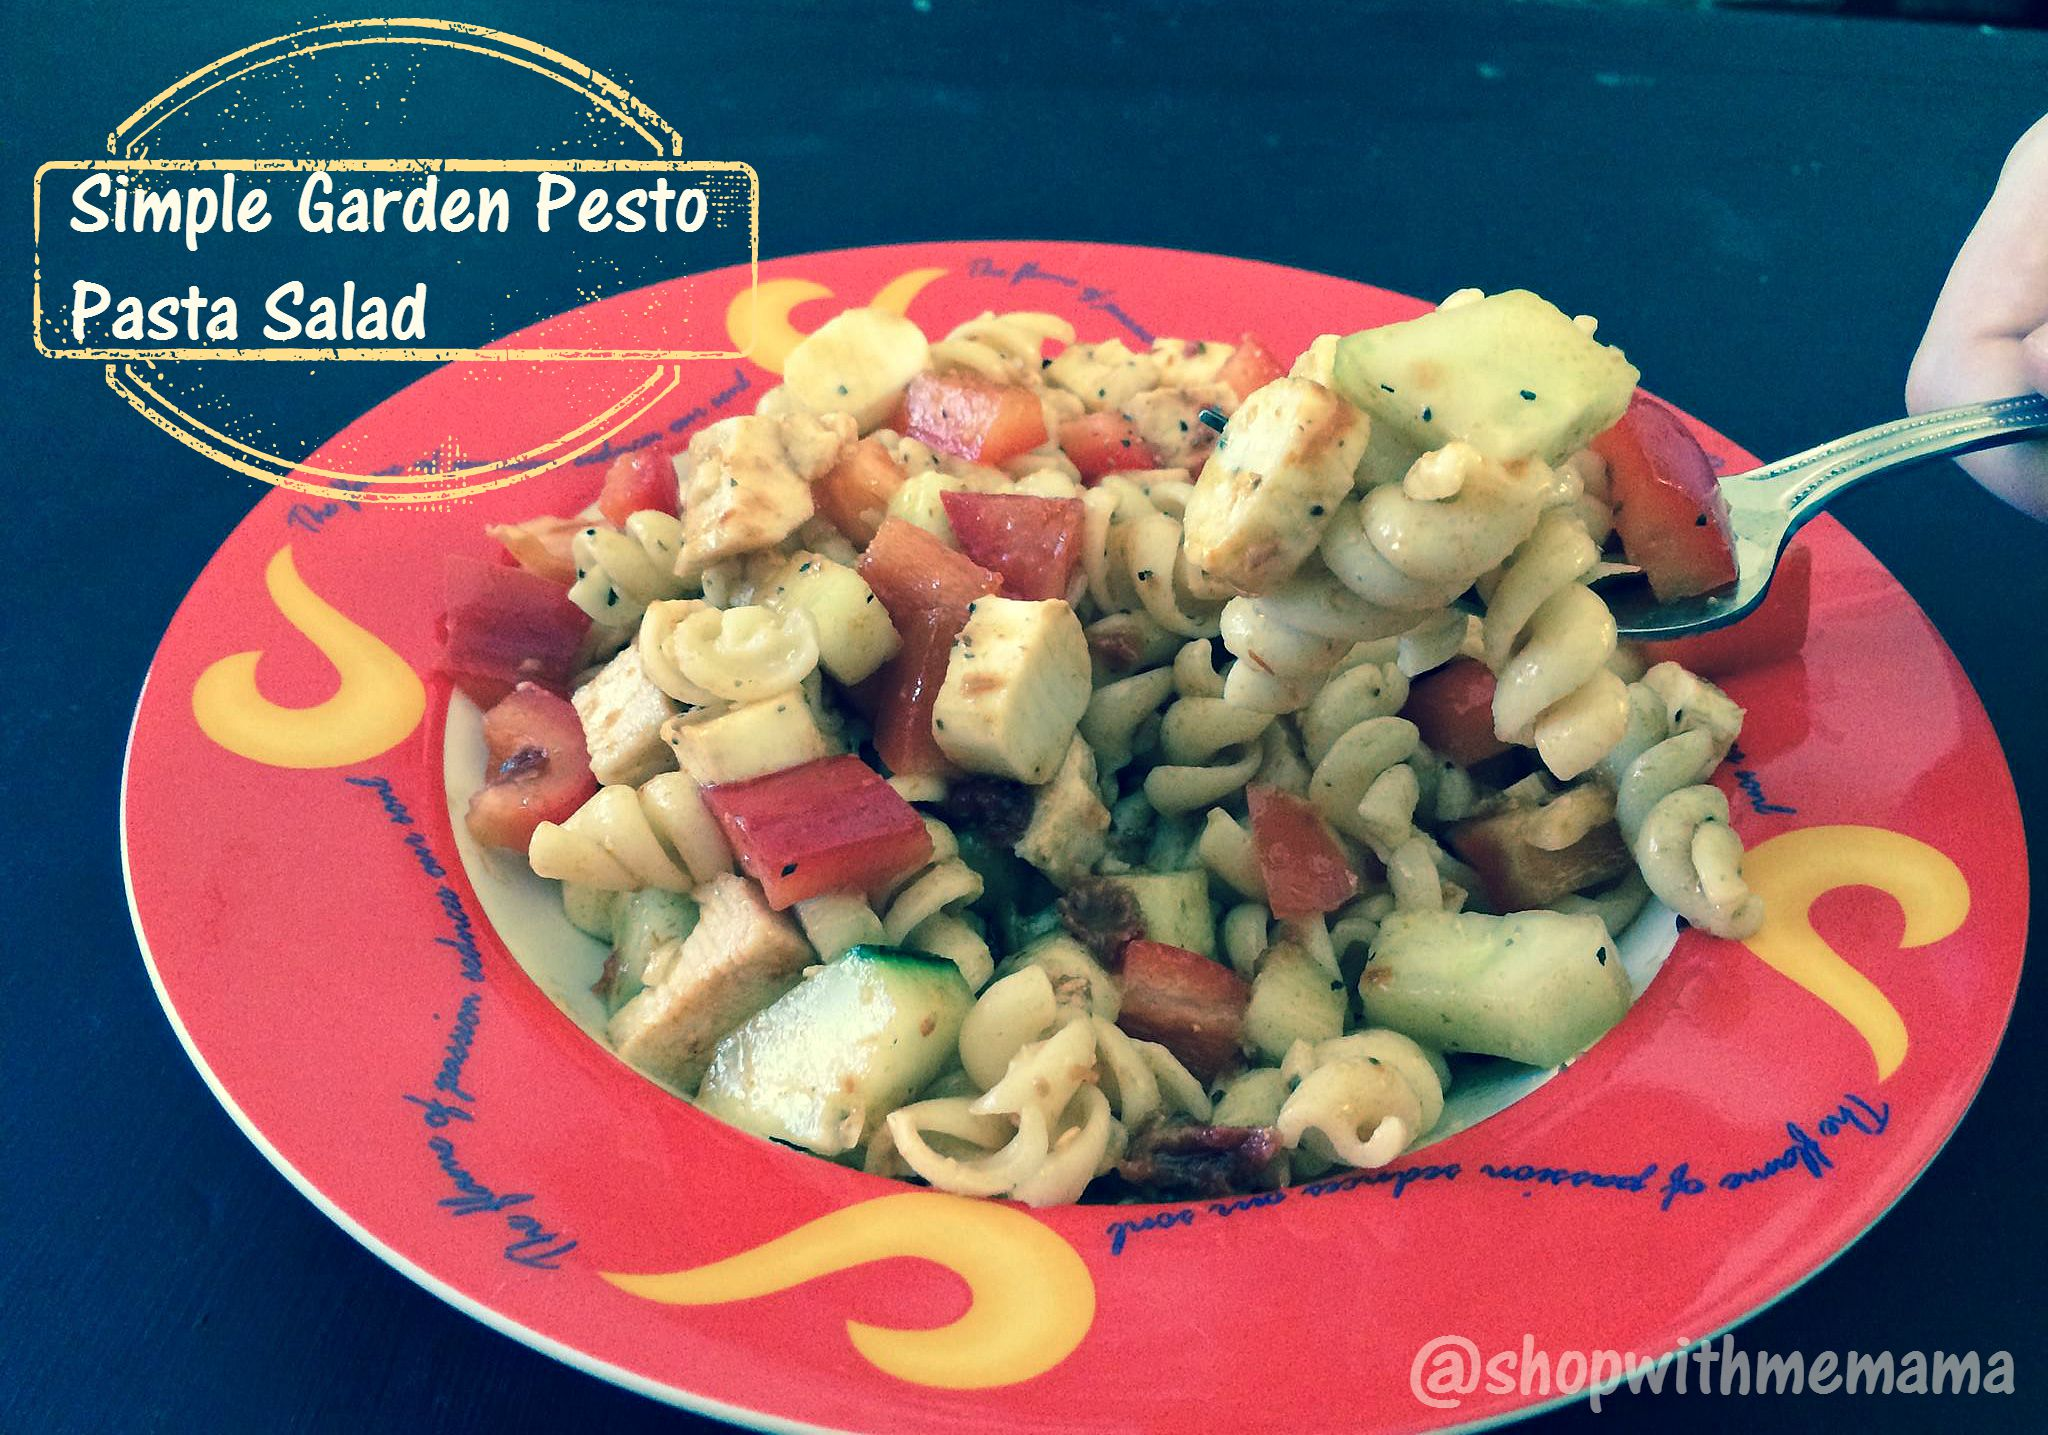 Simple Garden Pesto Pasta Salad